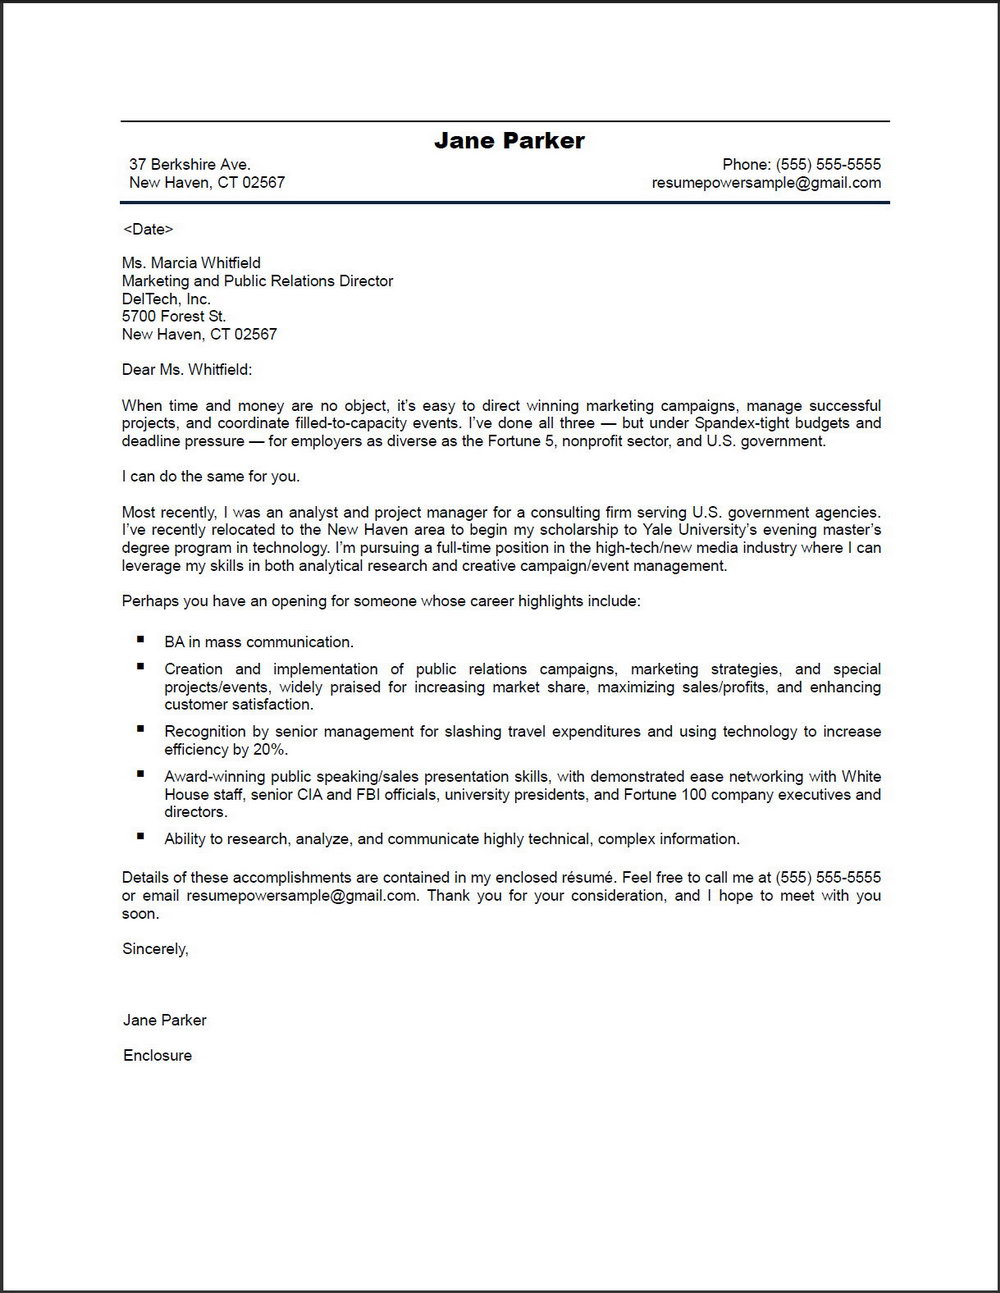 Free Professional Cv Cover Letter Samples